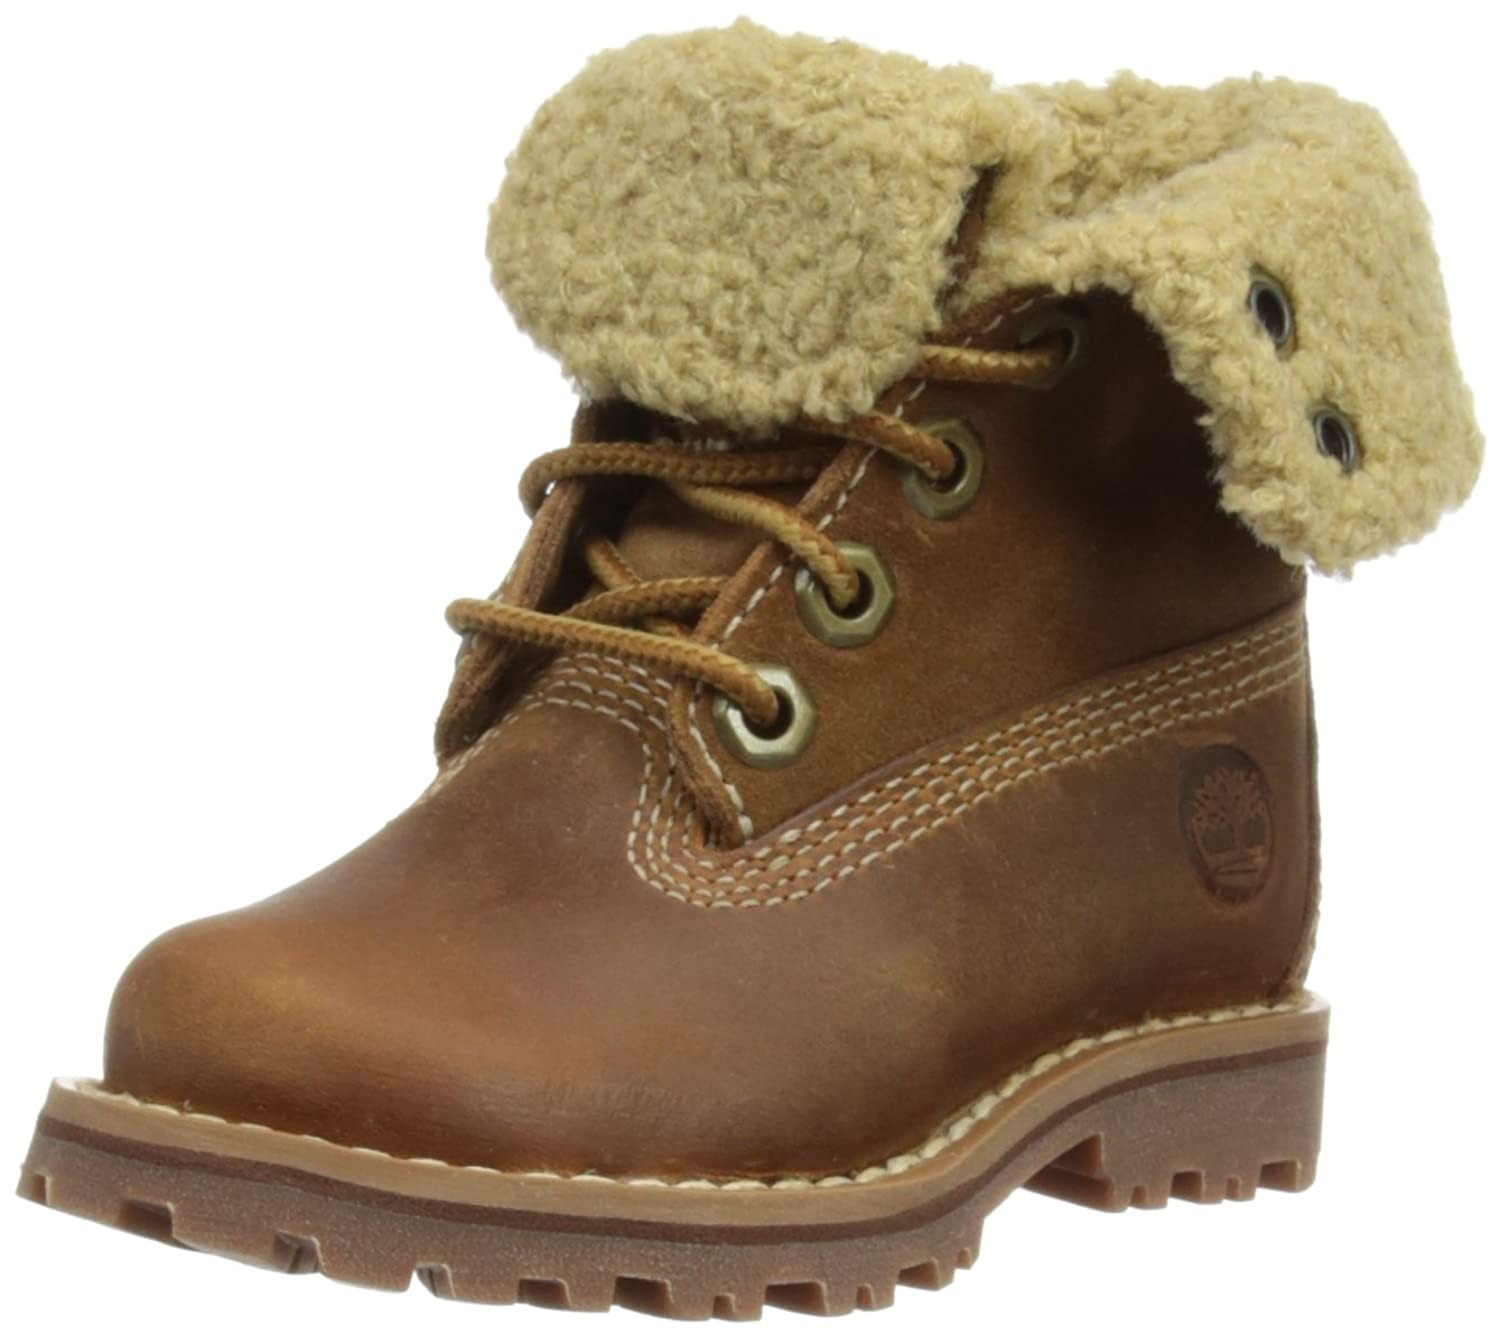 Timberland Auth 6In Shrl Bt Sla Taupe, Scarpe per bambini, Unisex - bambino